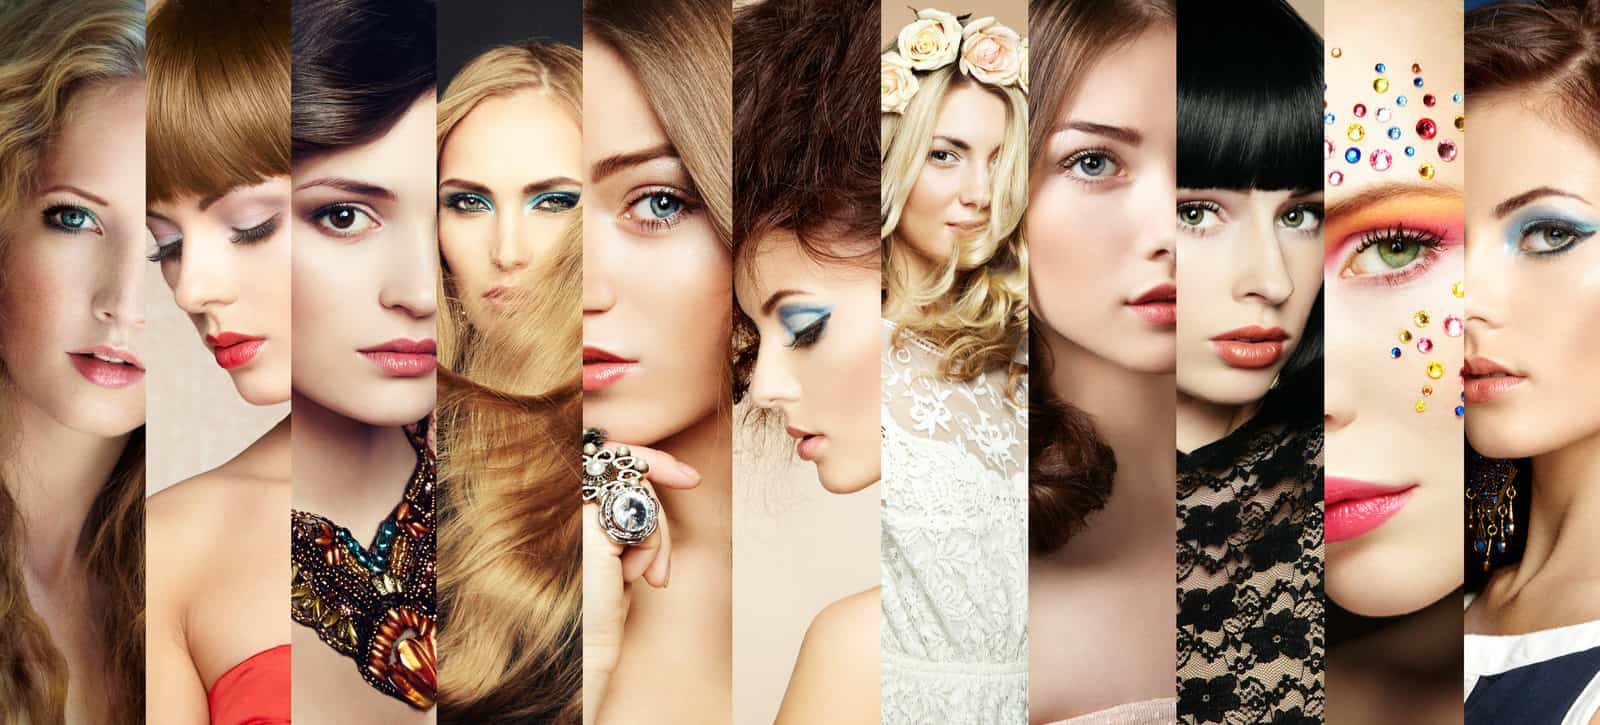 Women's hairstyles collage